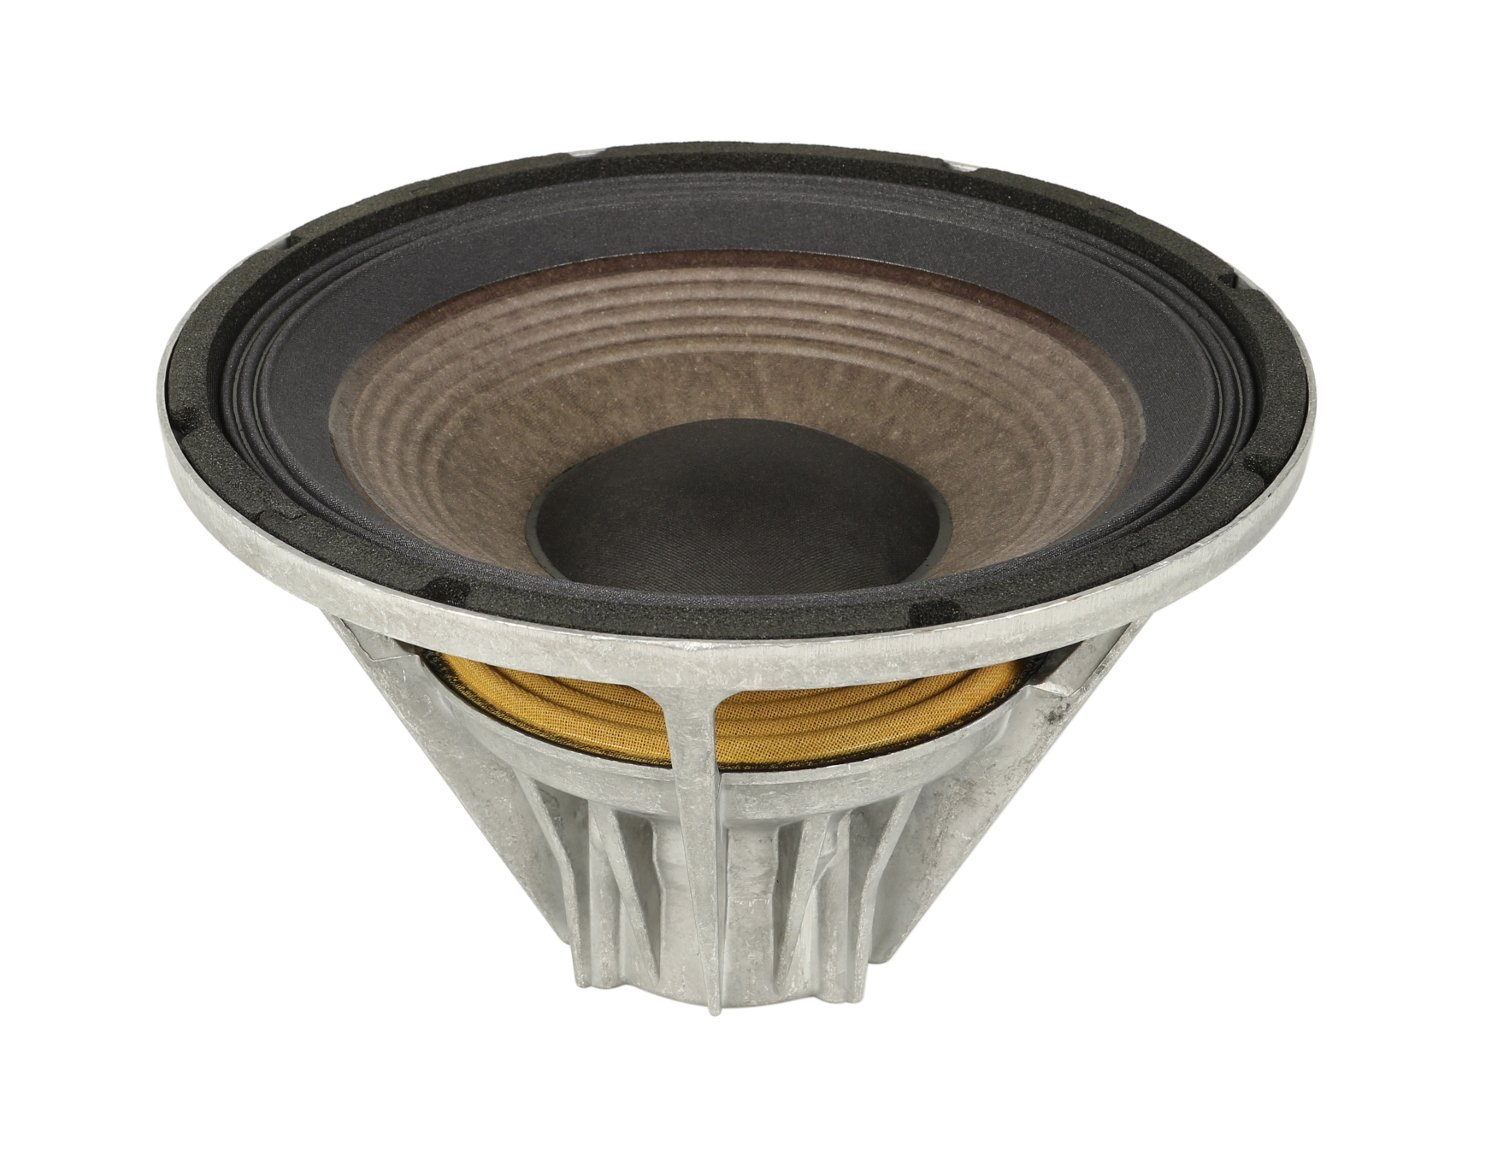 JBL 338312-004X Replacement Woofer for 2262H, SRX722, SRX712M 338312-004X